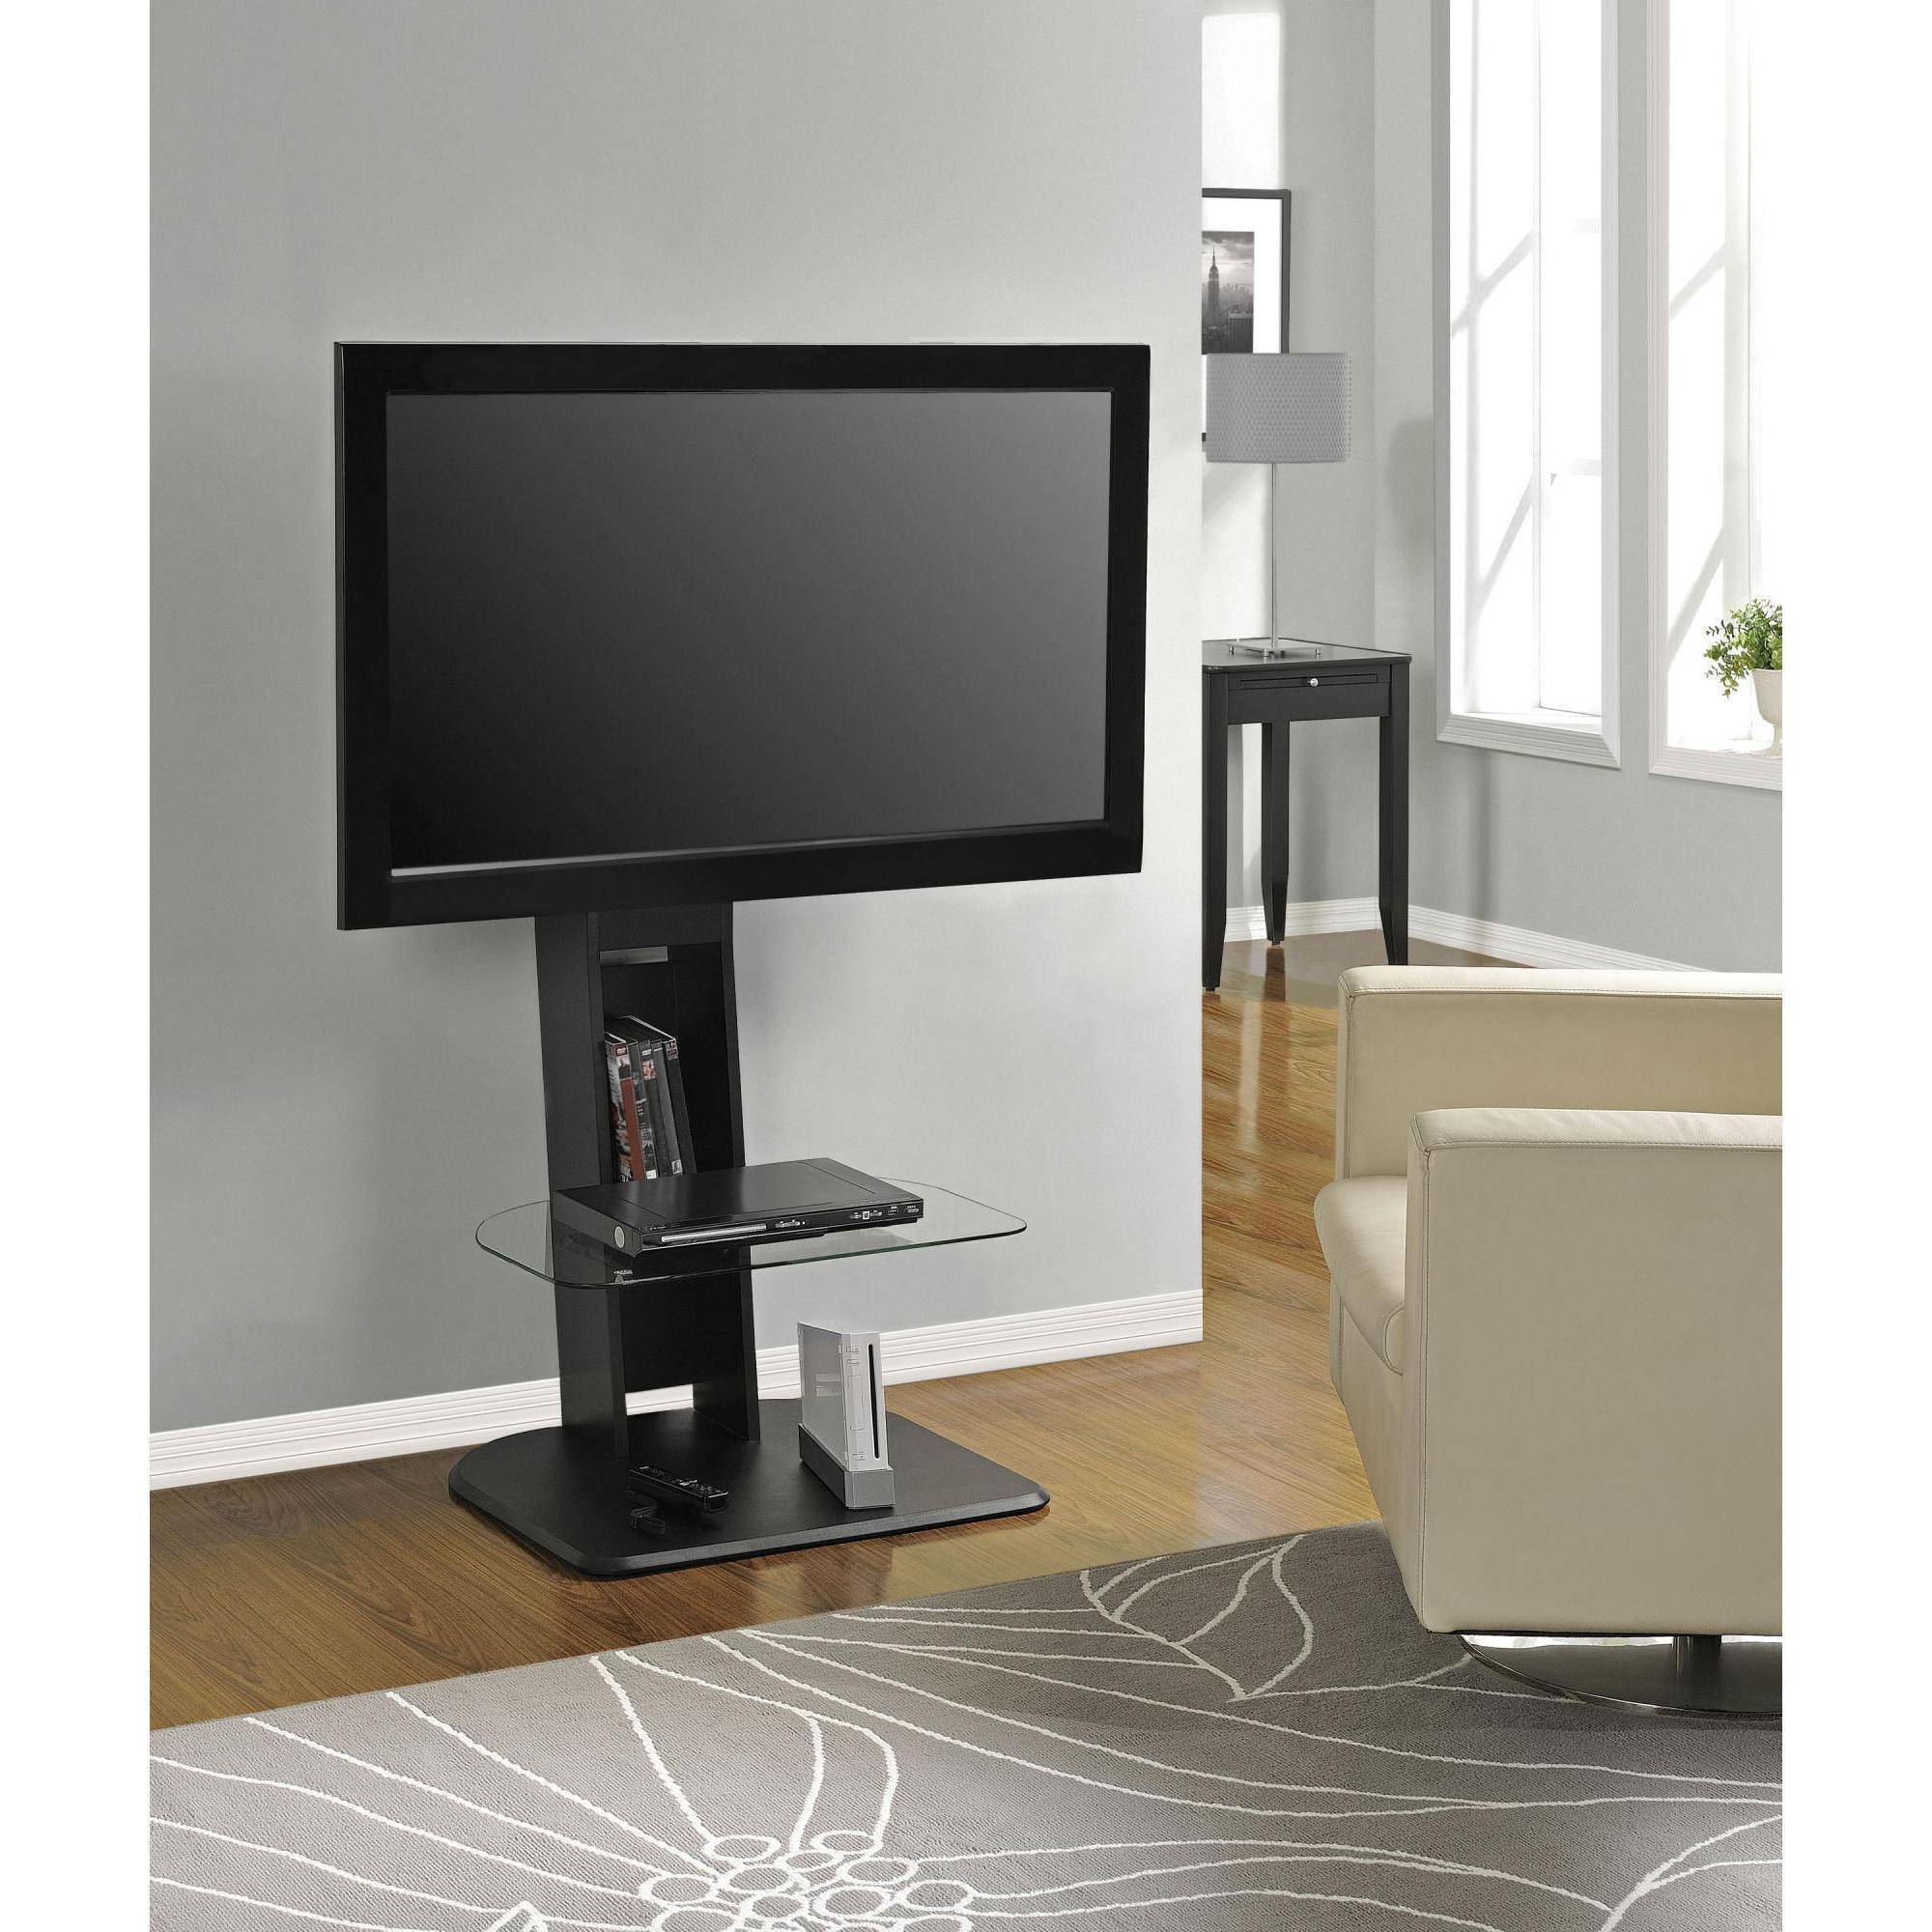 Tv Stands & Entertainment Centers - Walmart pertaining to Storage Tv Stands (Image 12 of 15)